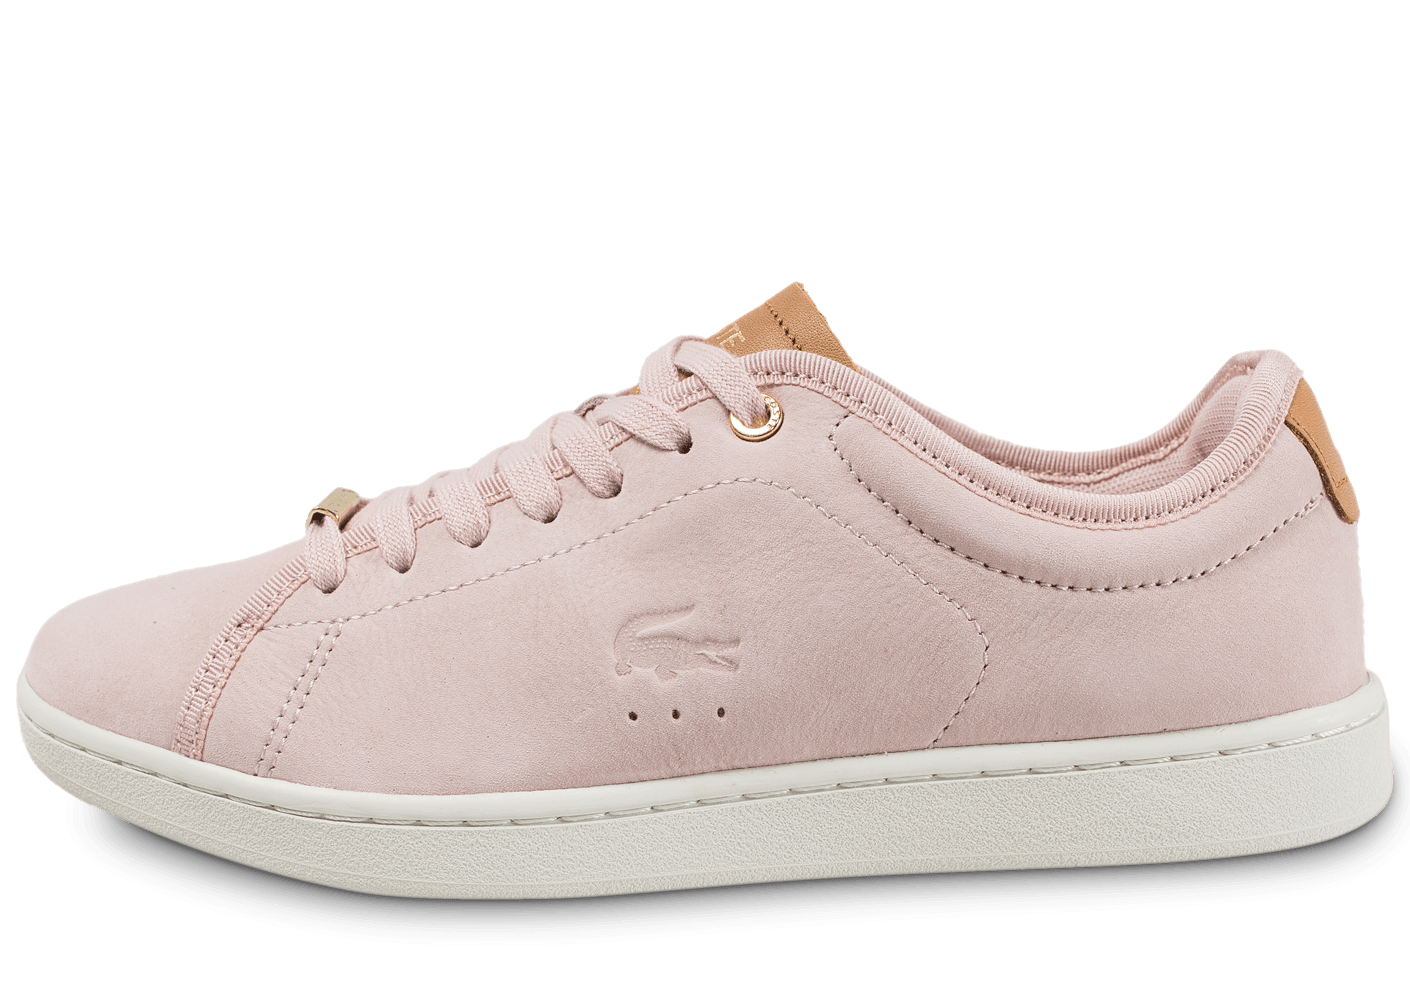 Lacoste Les W Evo Baskets Toutes 317 Carnaby Chaussures Rose 66rqROc